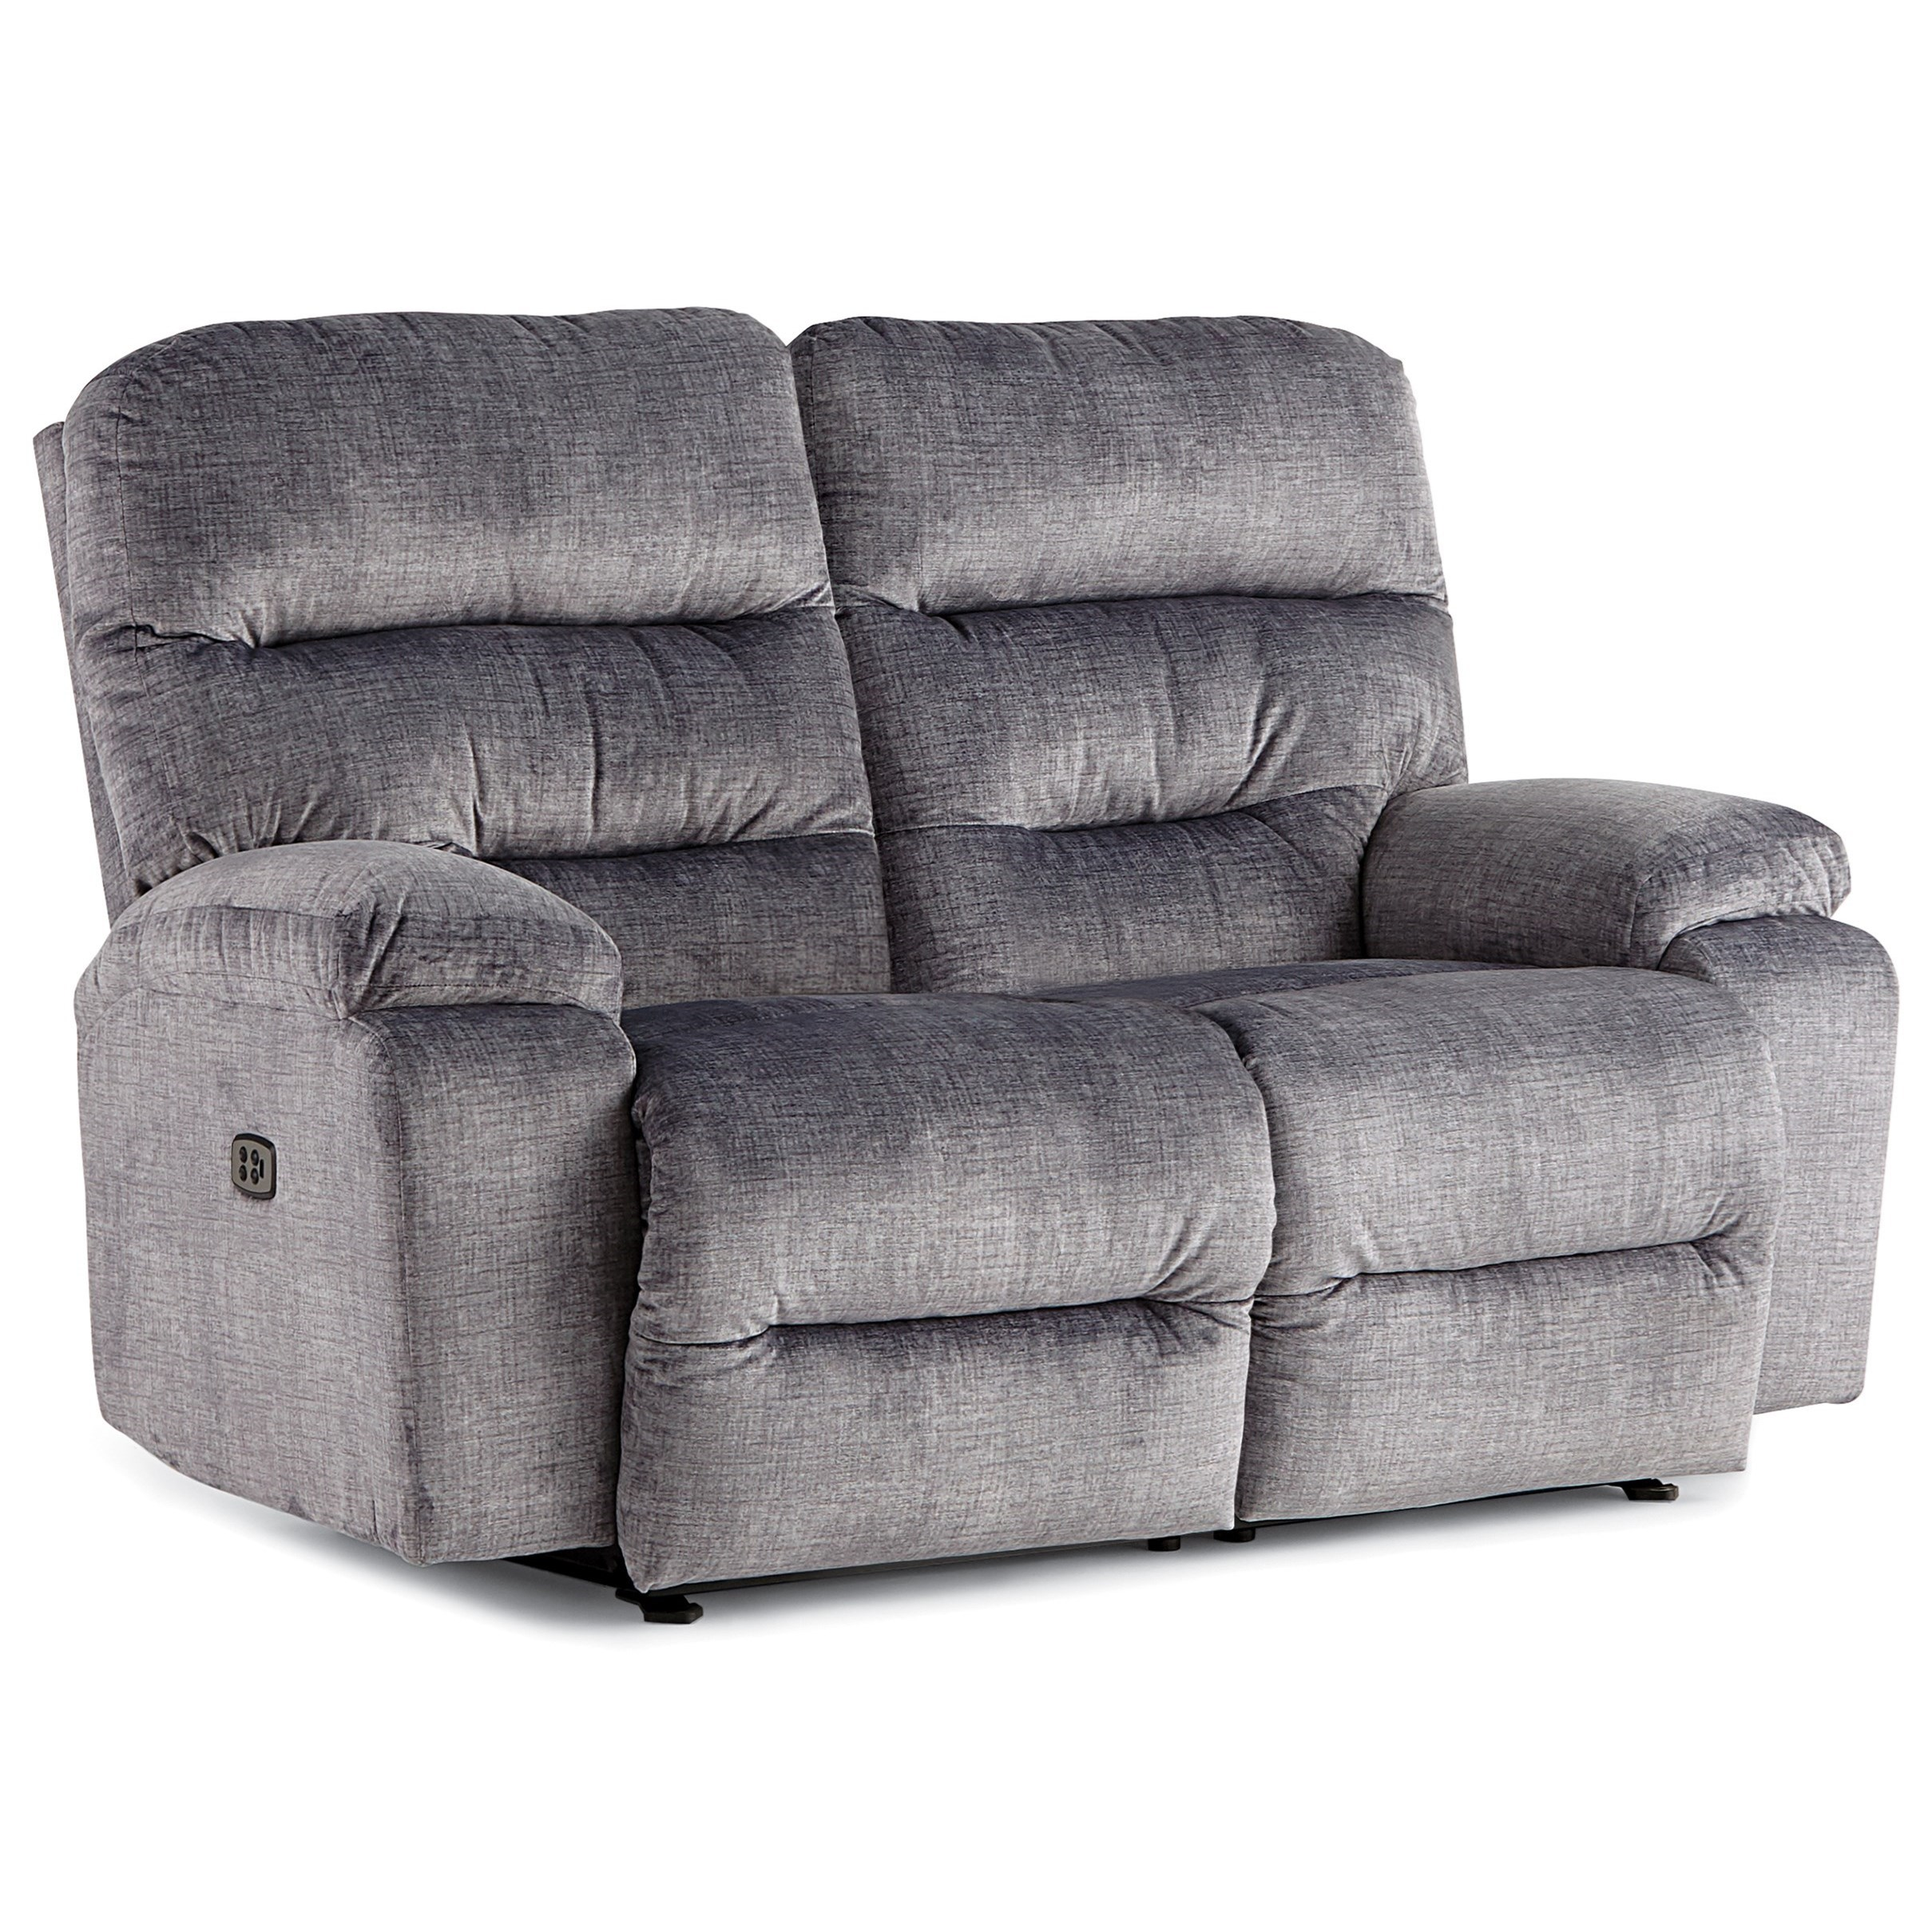 Ryson Power Headrest Reclining Space Saver Love by Best Home Furnishings at Alison Craig Home Furnishings